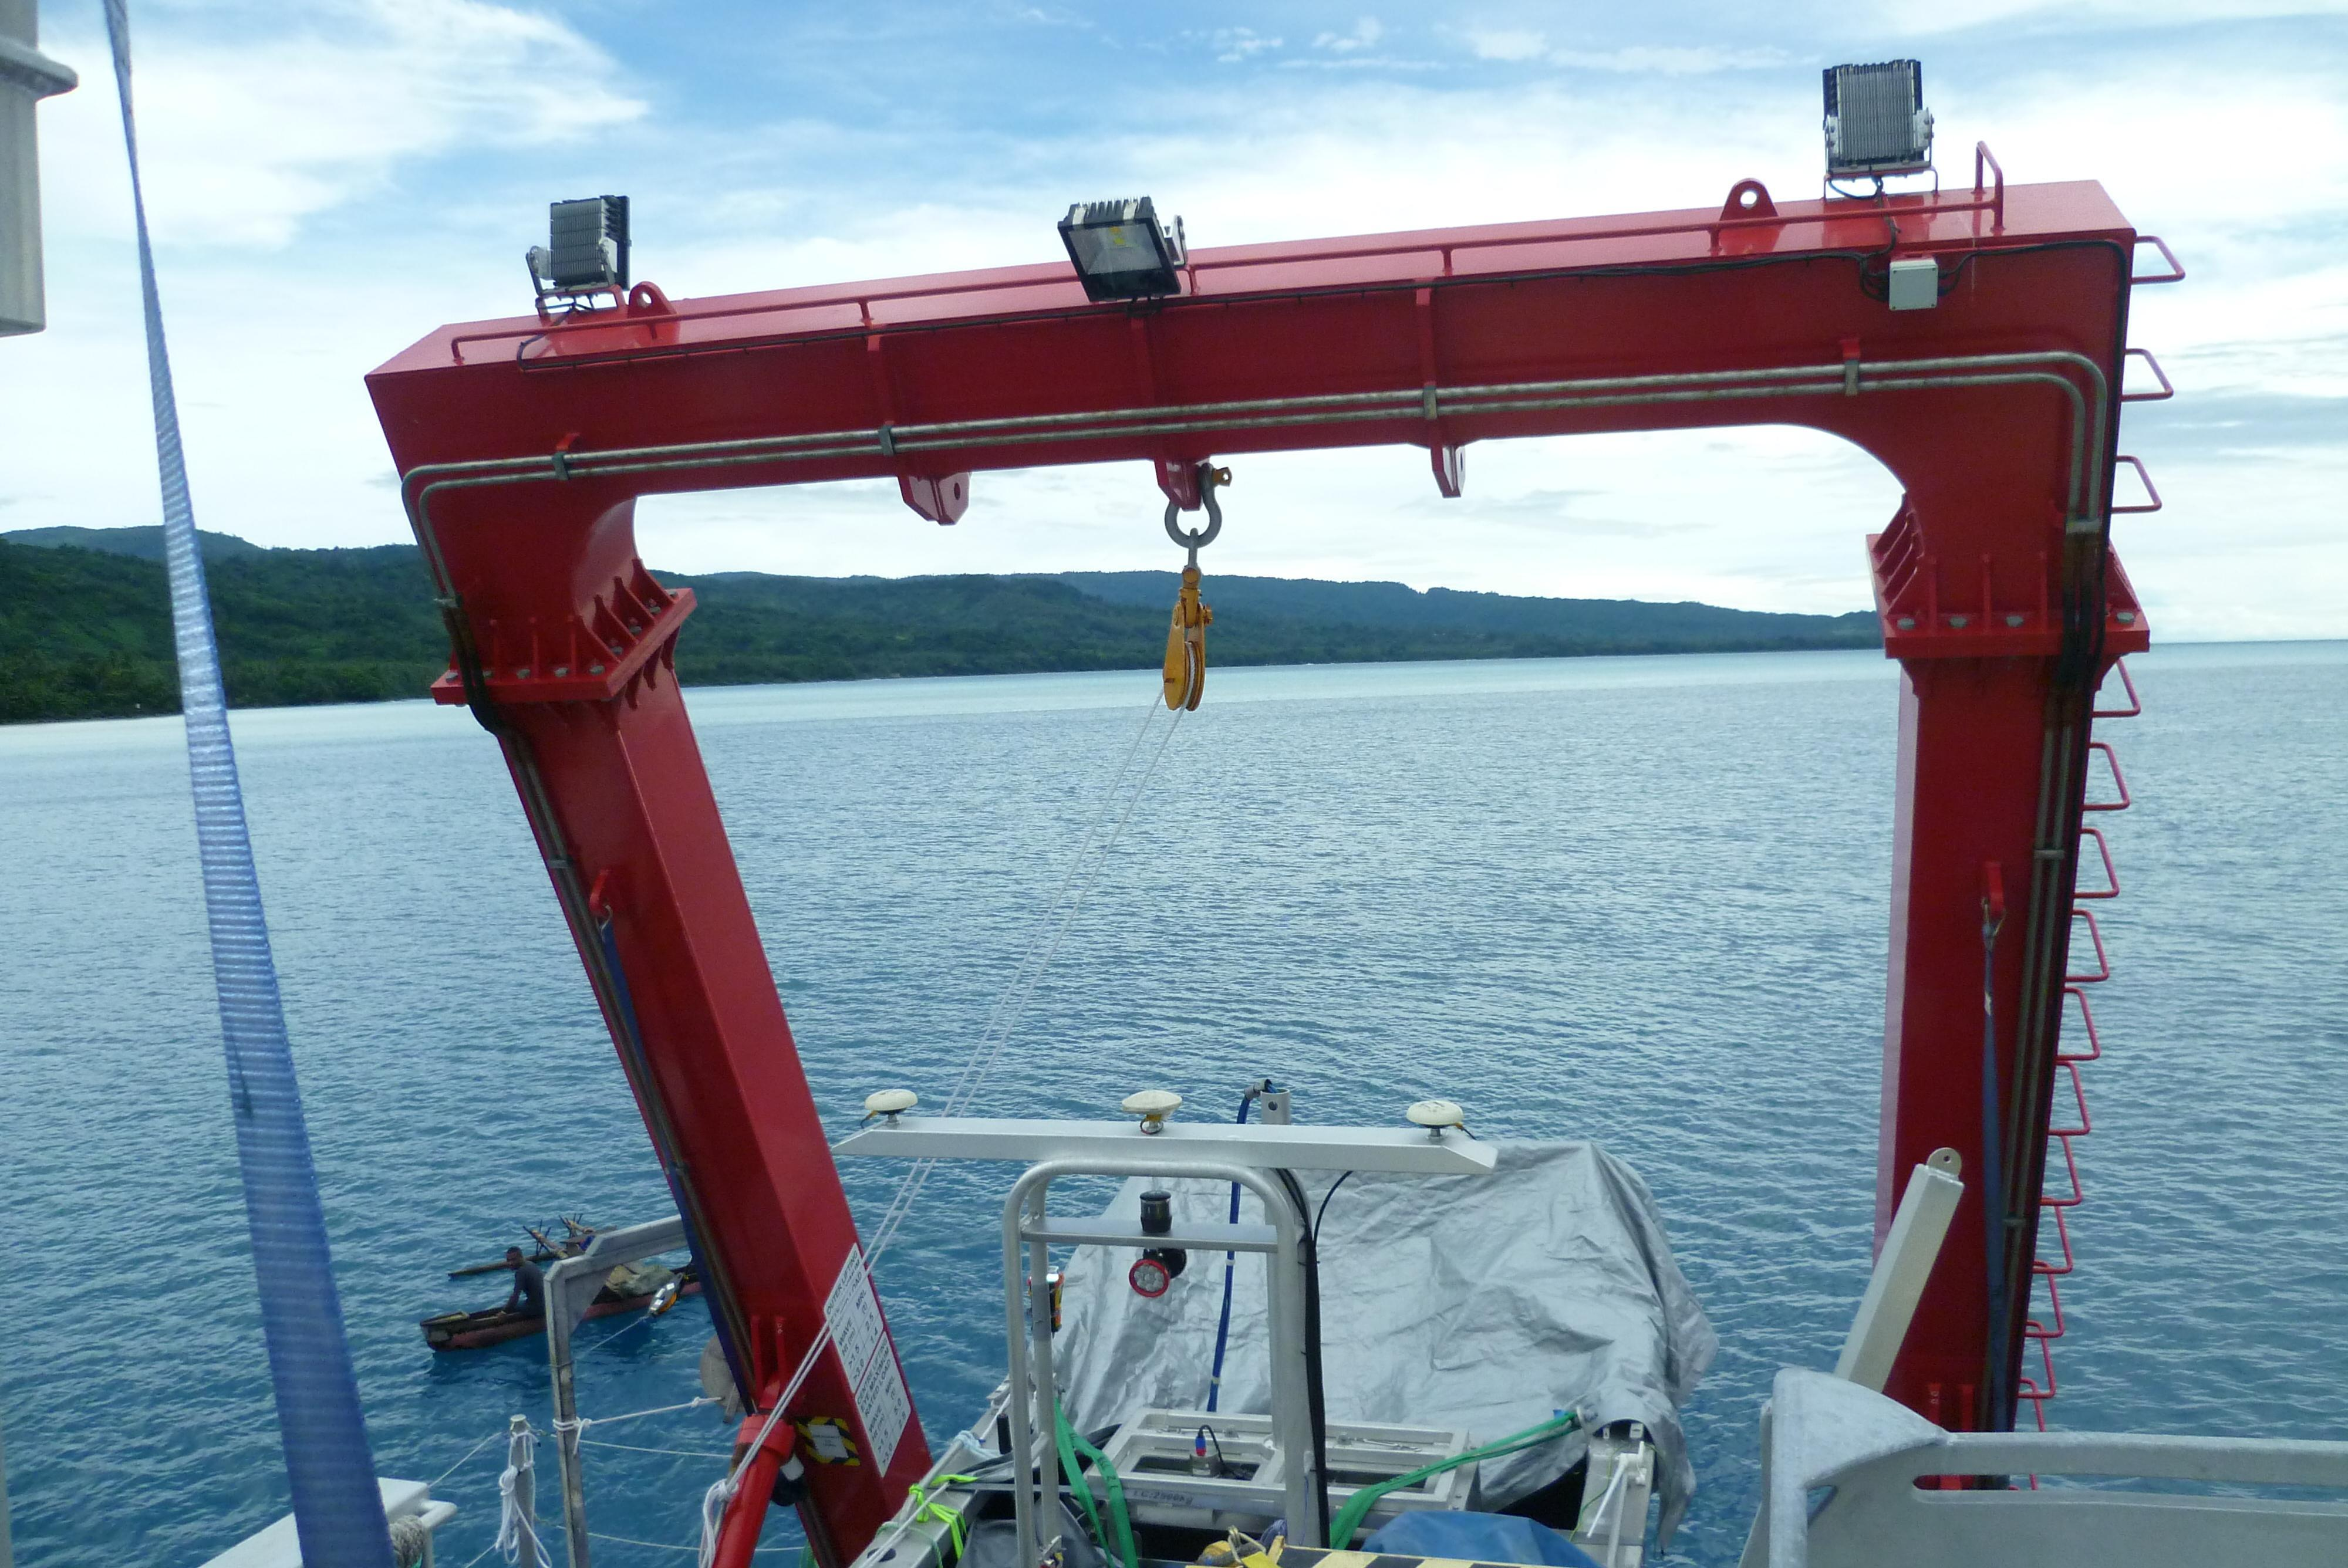 MV GURU With a 20-Tonne A Frame for Marine Towing